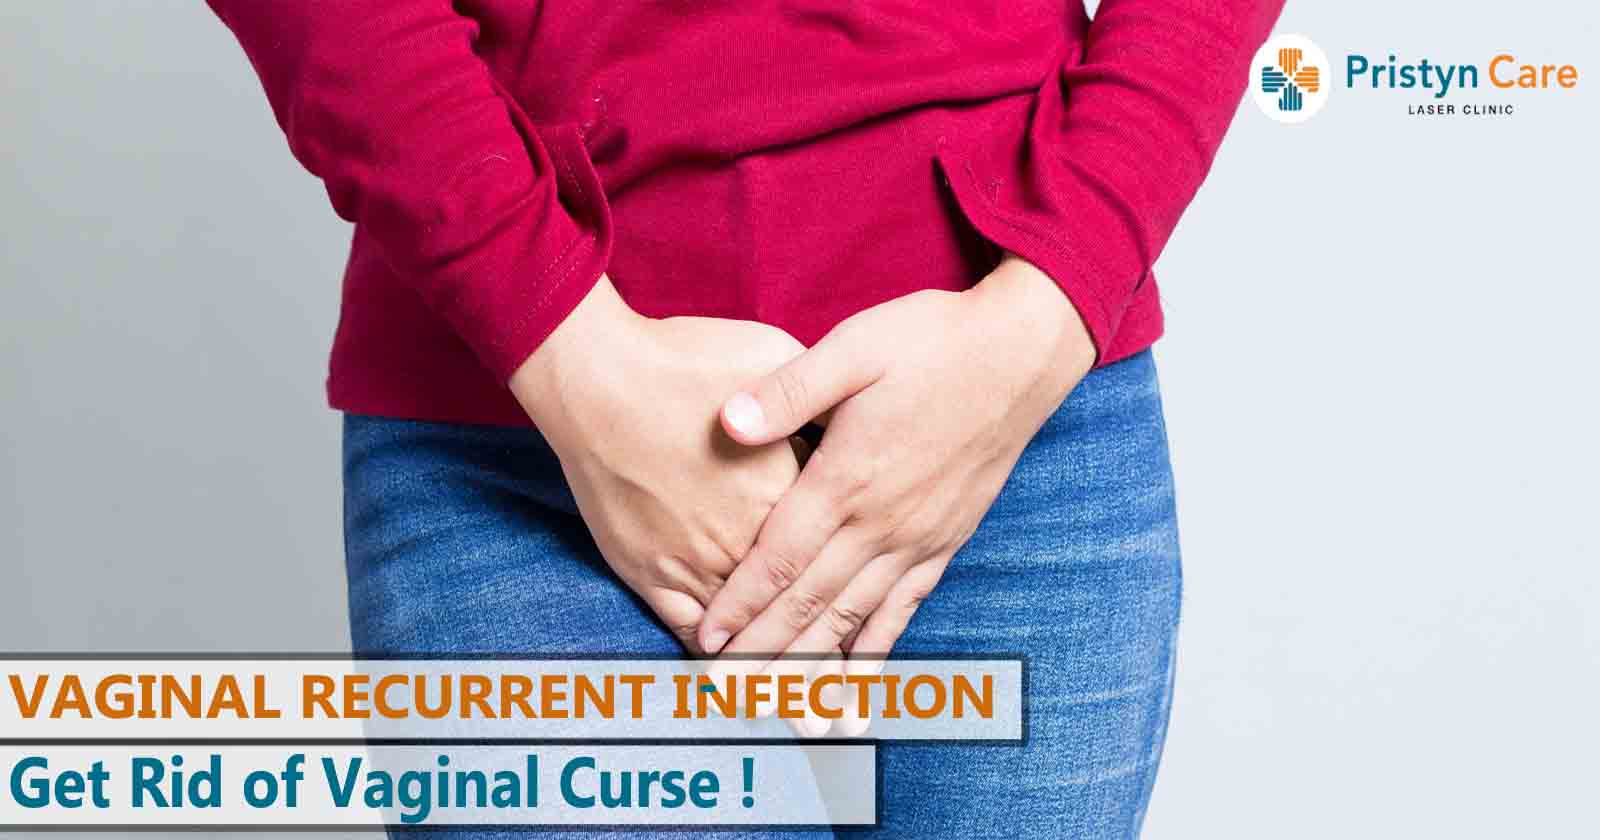 vaginal-recurrent-infection-get-rid-of-vaginal-curse